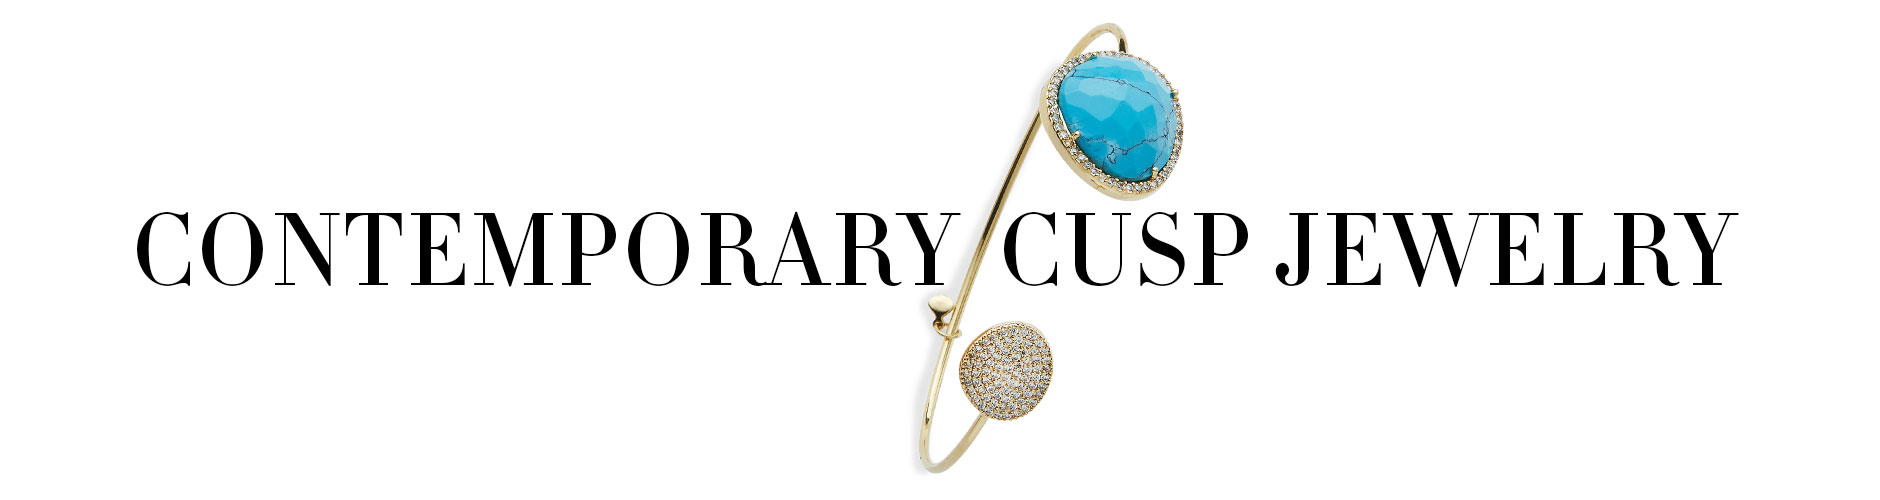 Contemporary Cusp Jewelry